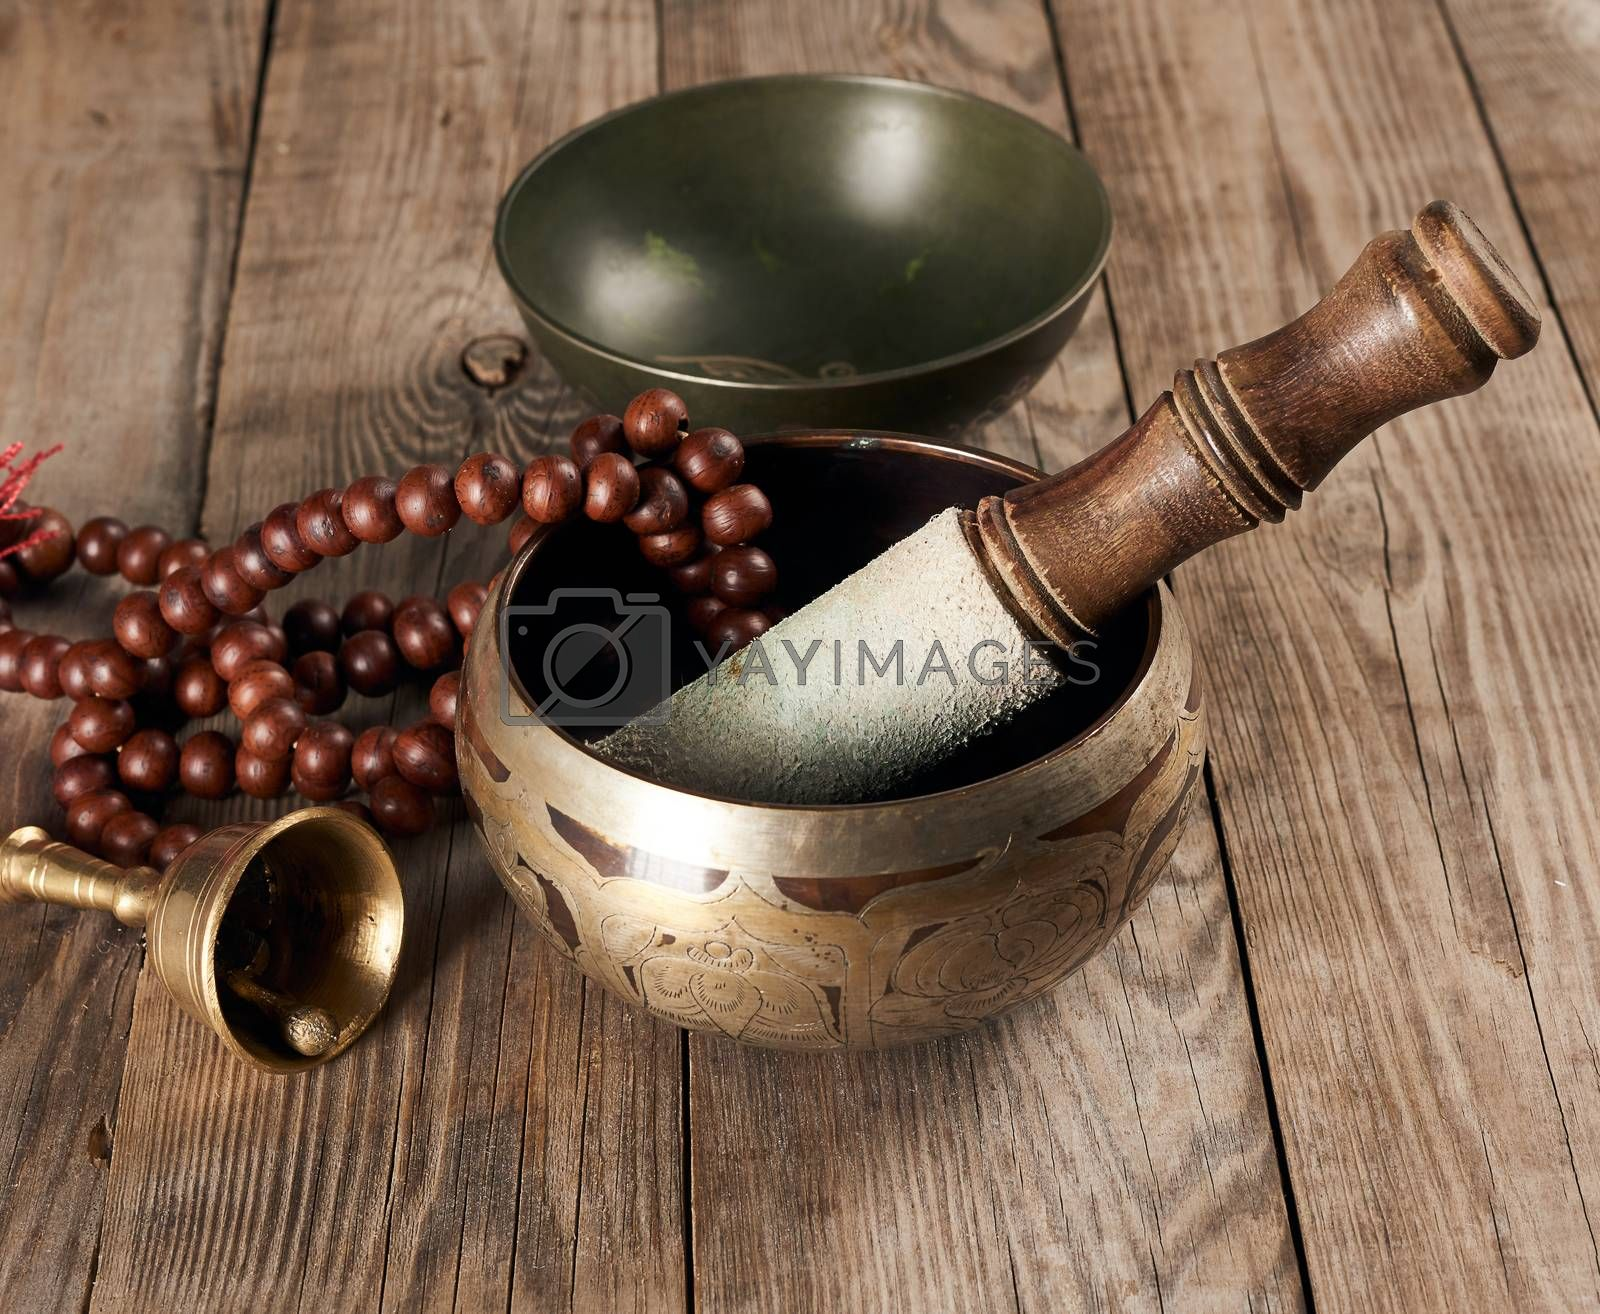 Tibetan singing copper bowl with a wooden clapper on a brown wooden table, objects for meditation and alternative medicine, close up